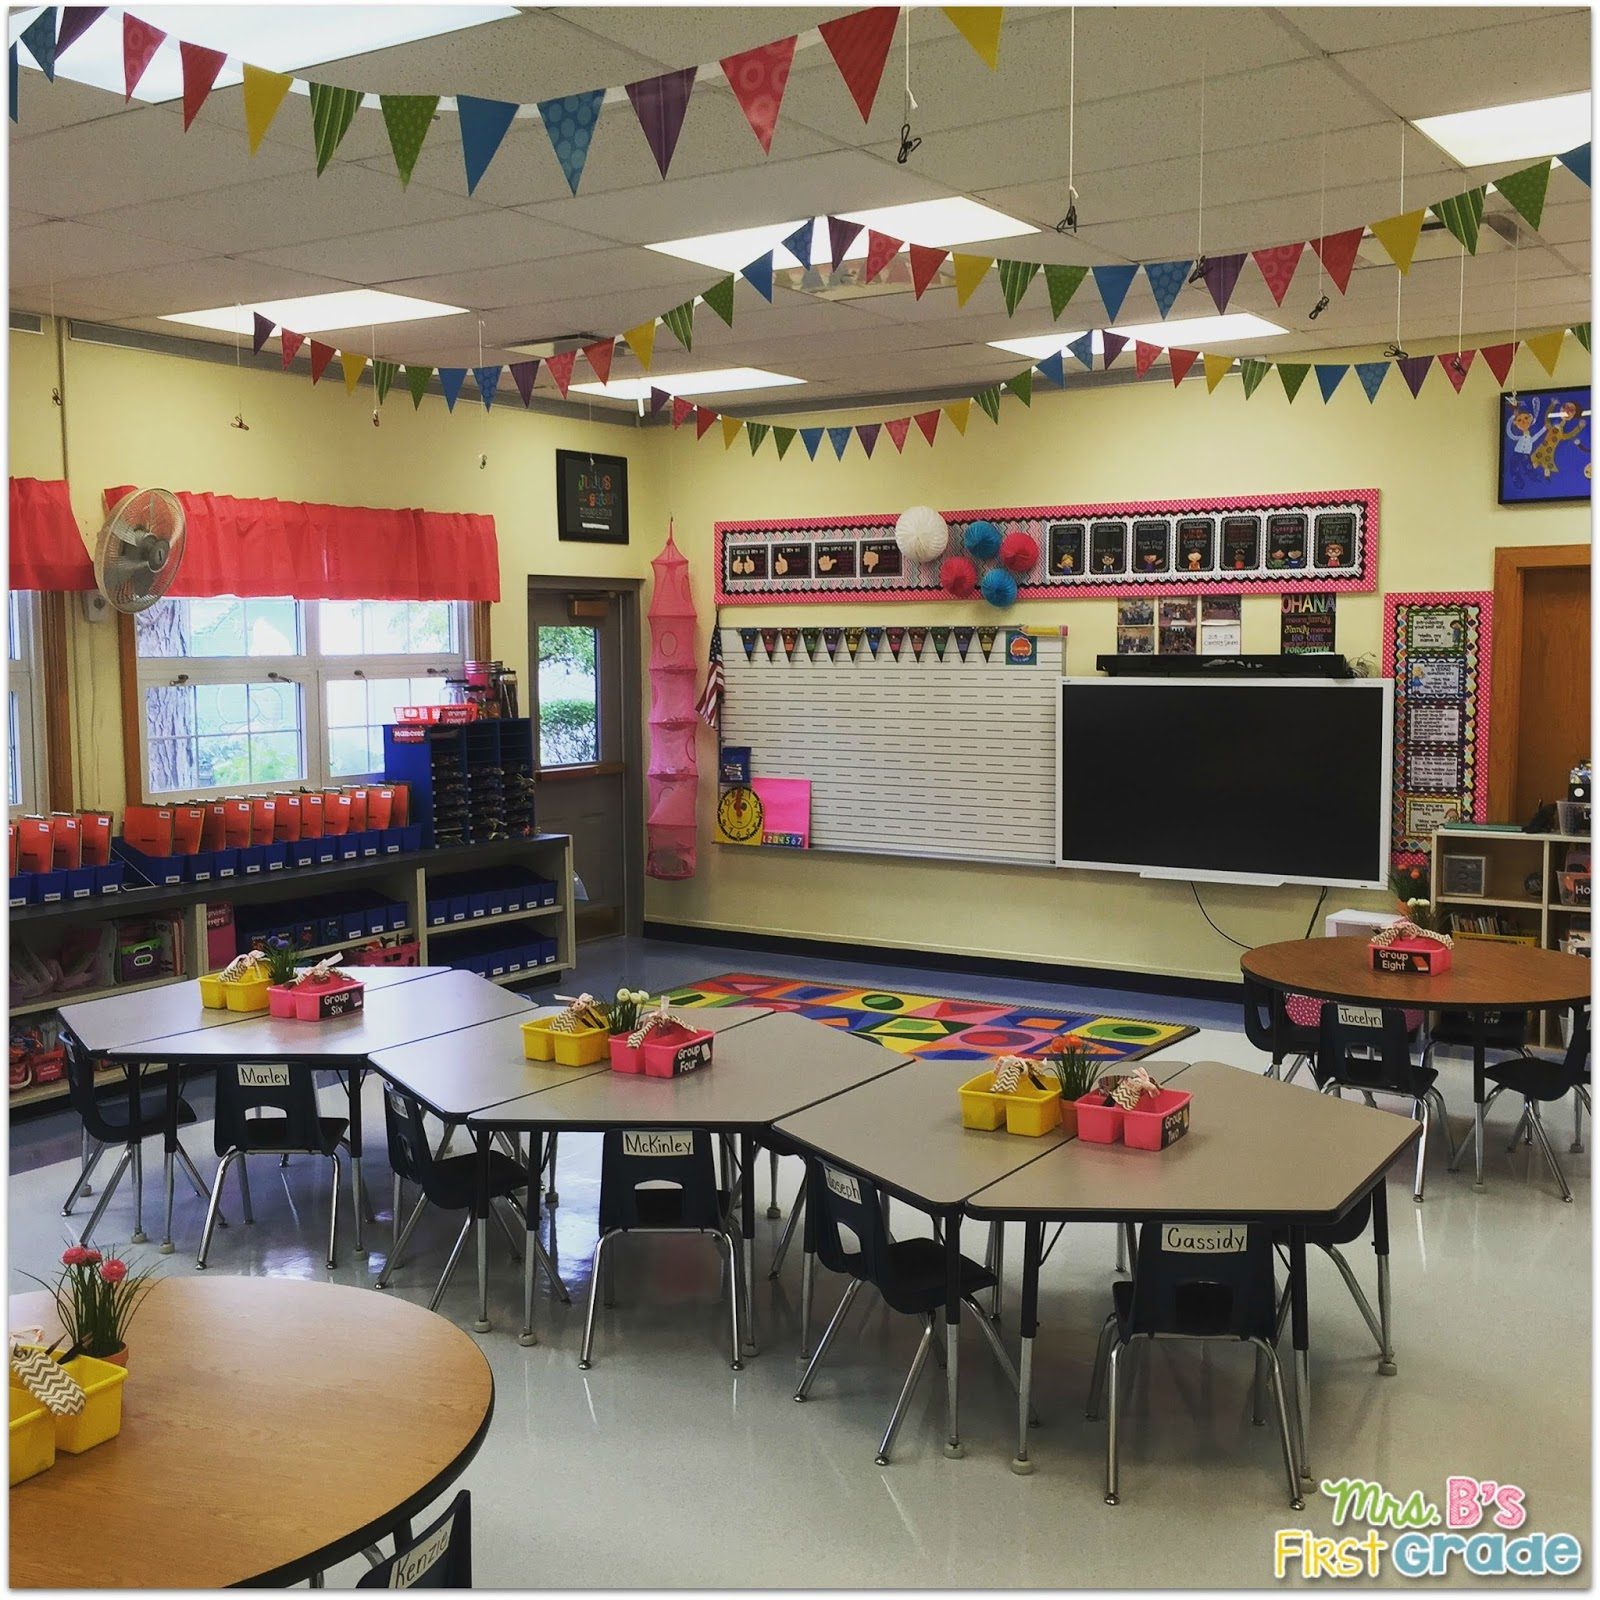 Innovative First Grade Classroom ~ My classroom mrs b s first grade